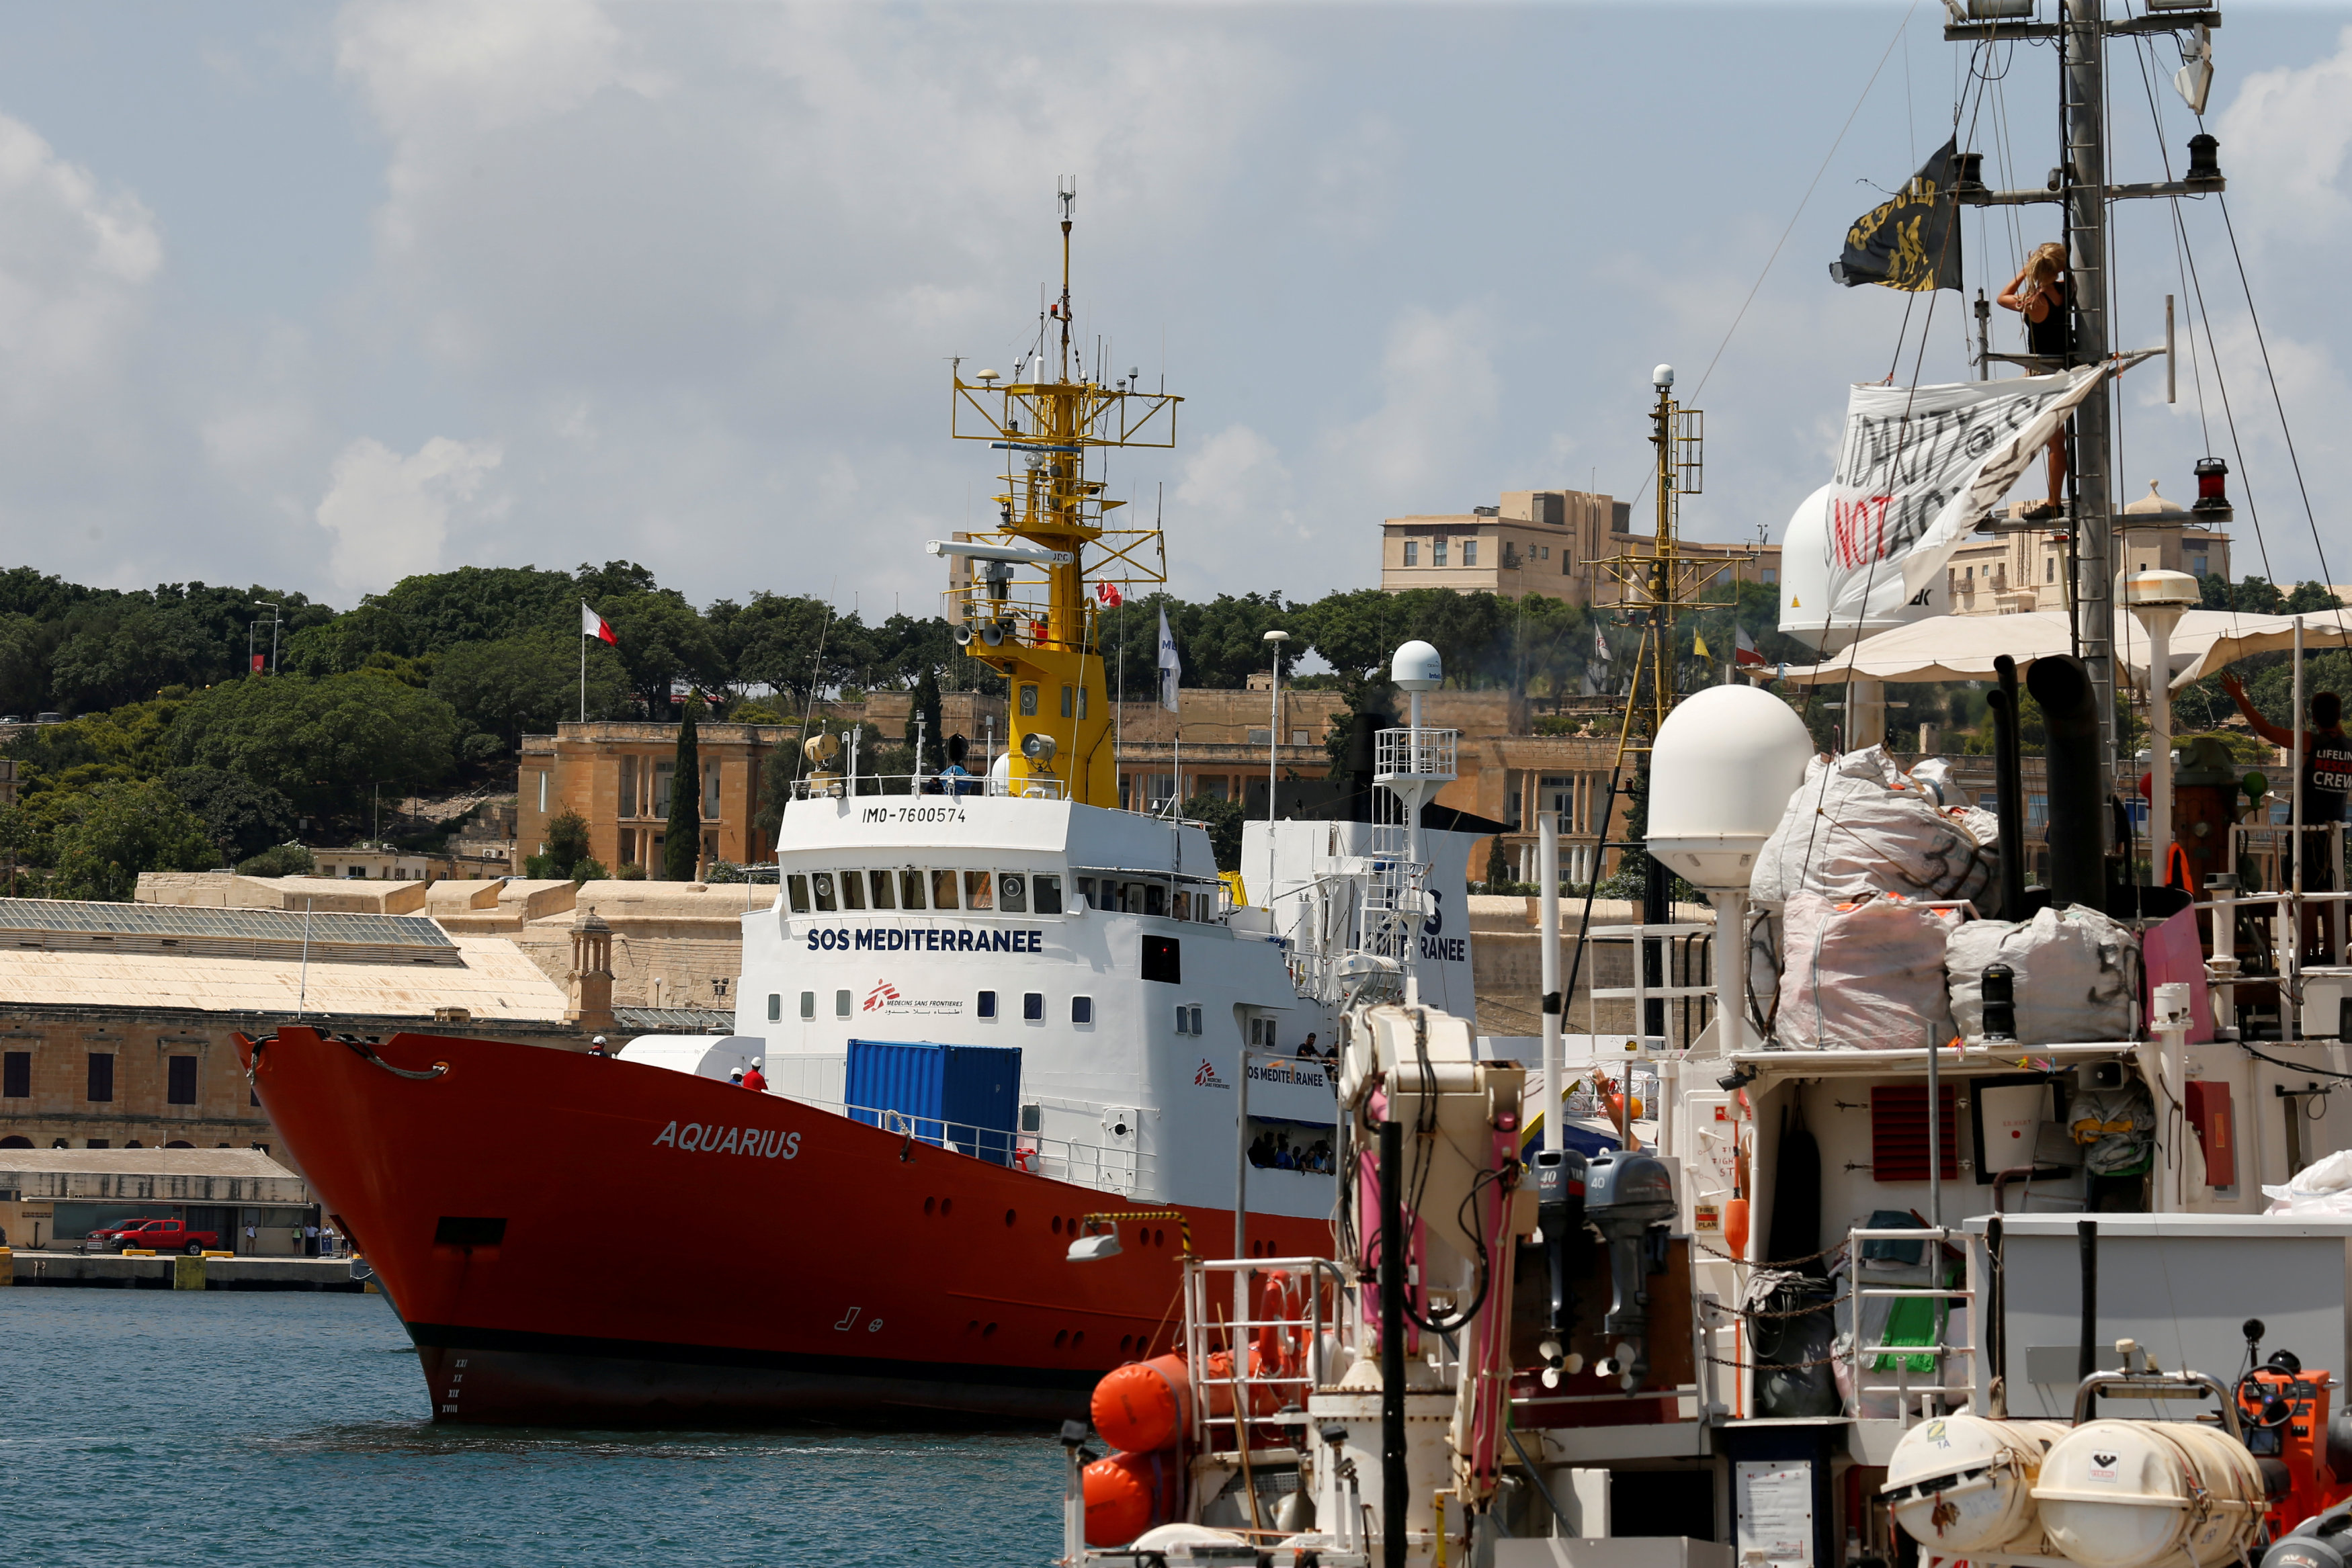 FILE PHOTO: The humanitarian ship Aquarius is seen at Boiler Wharf in Senglea, in Valletta's Grand Harbour, Malta August 15, 2018. REUTERS/Darrin Zammit Lupi/File Photo